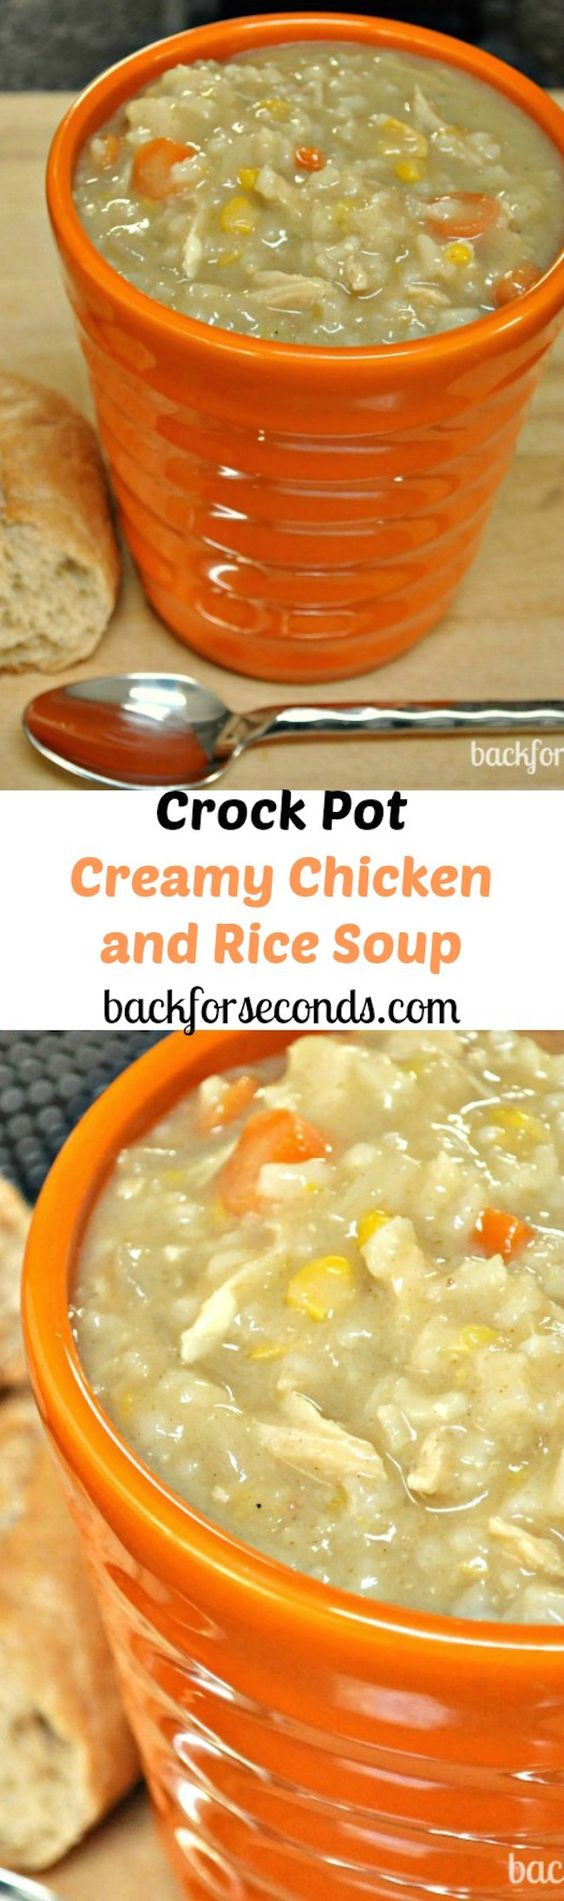 The 11 Best Crockpot Soup Recipes | Page 2 of 3 | The Eleven Best